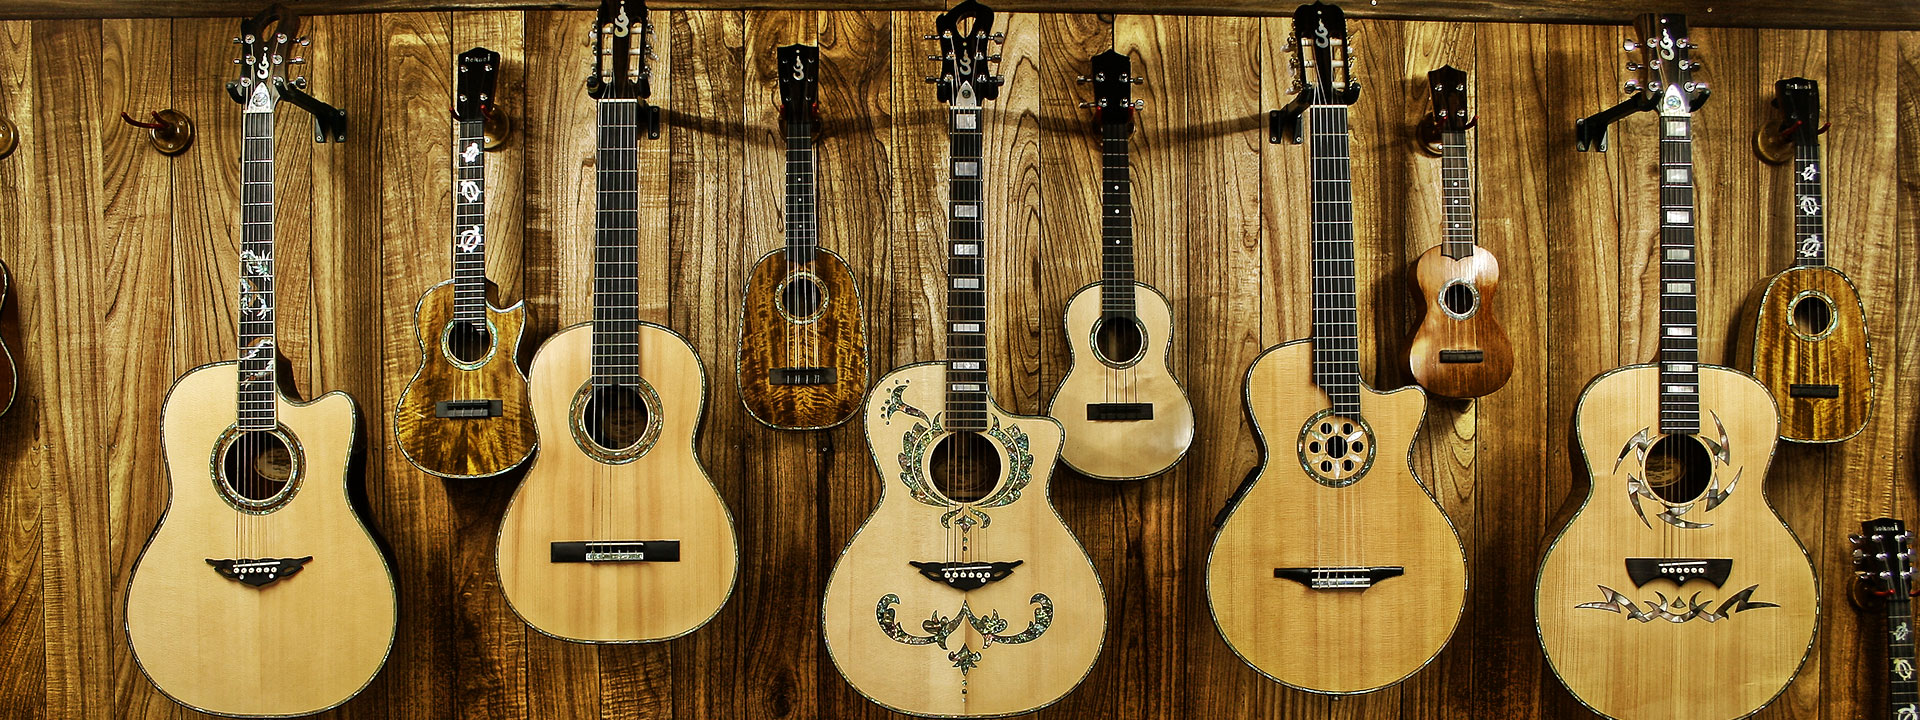 ferangeli guitar handcrafter cebu 39 s finest handcrafted guitars. Black Bedroom Furniture Sets. Home Design Ideas